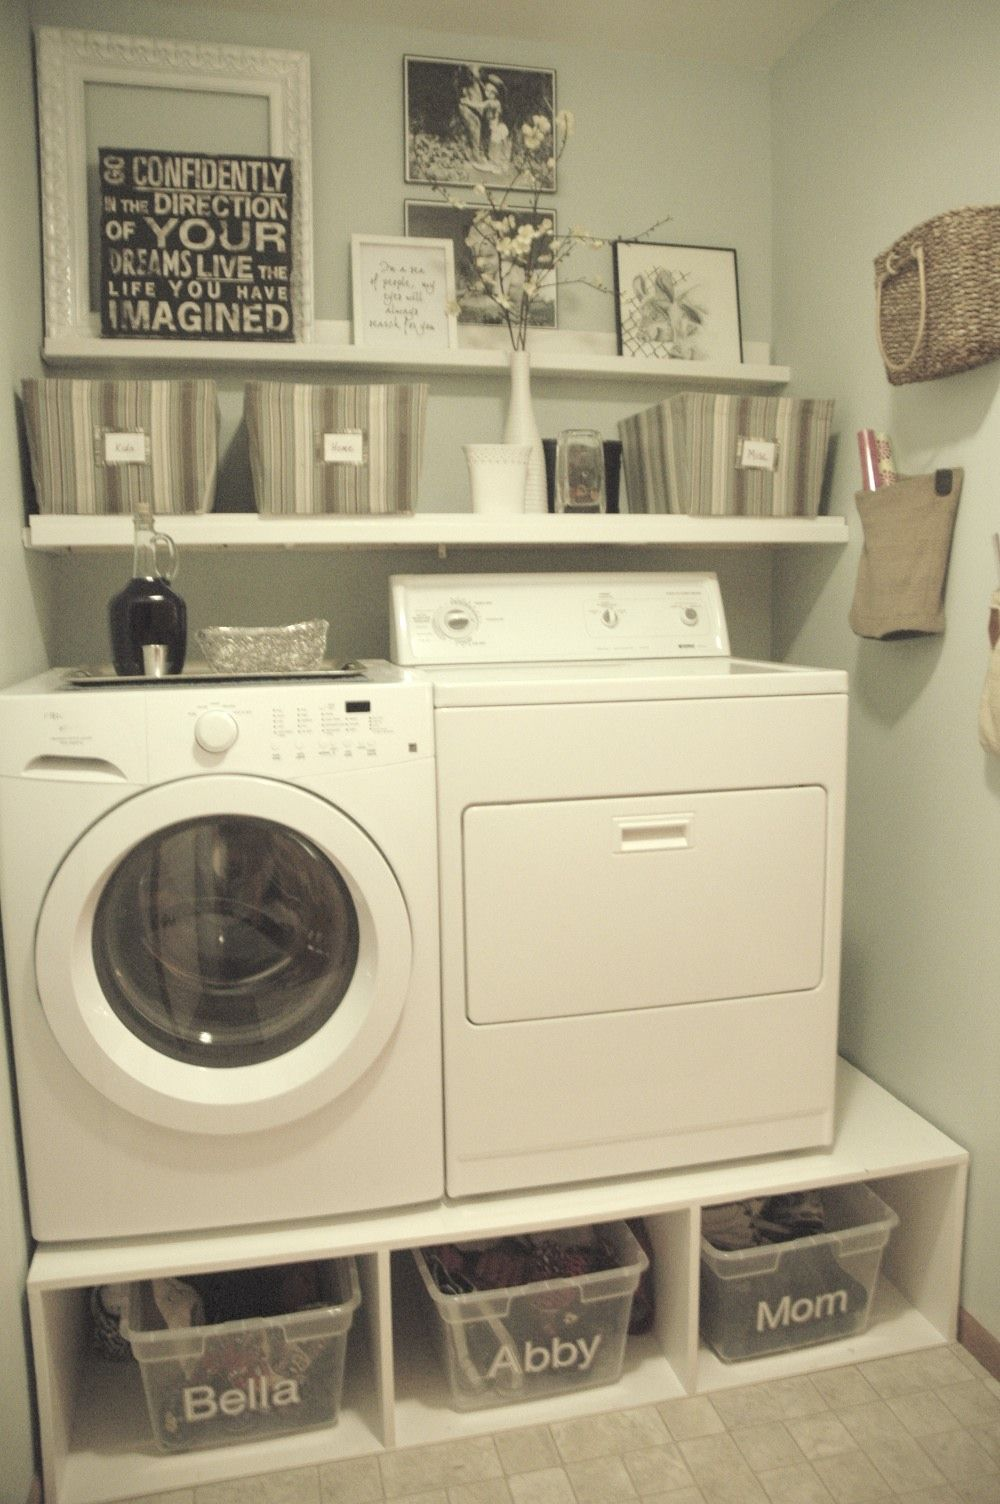 Diy Laundry Room Decor 20 Space Saving Ideas For Functional Small Laundry Room Design